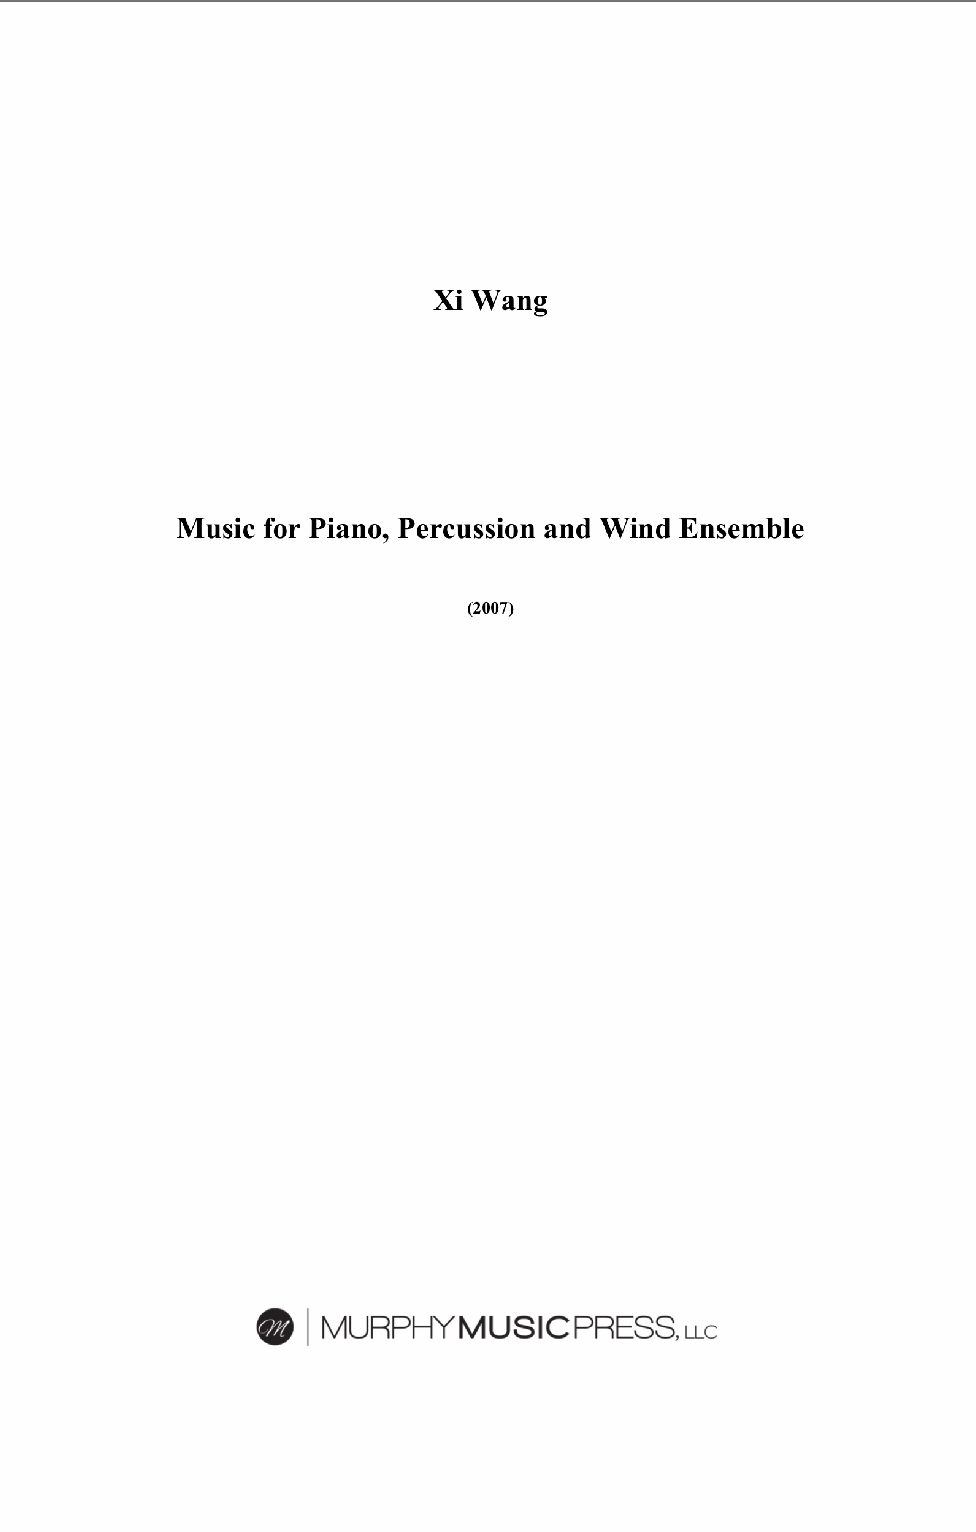 Music For Piano, Percussion, And Wind Ensemble (Rental) by Xi Wang